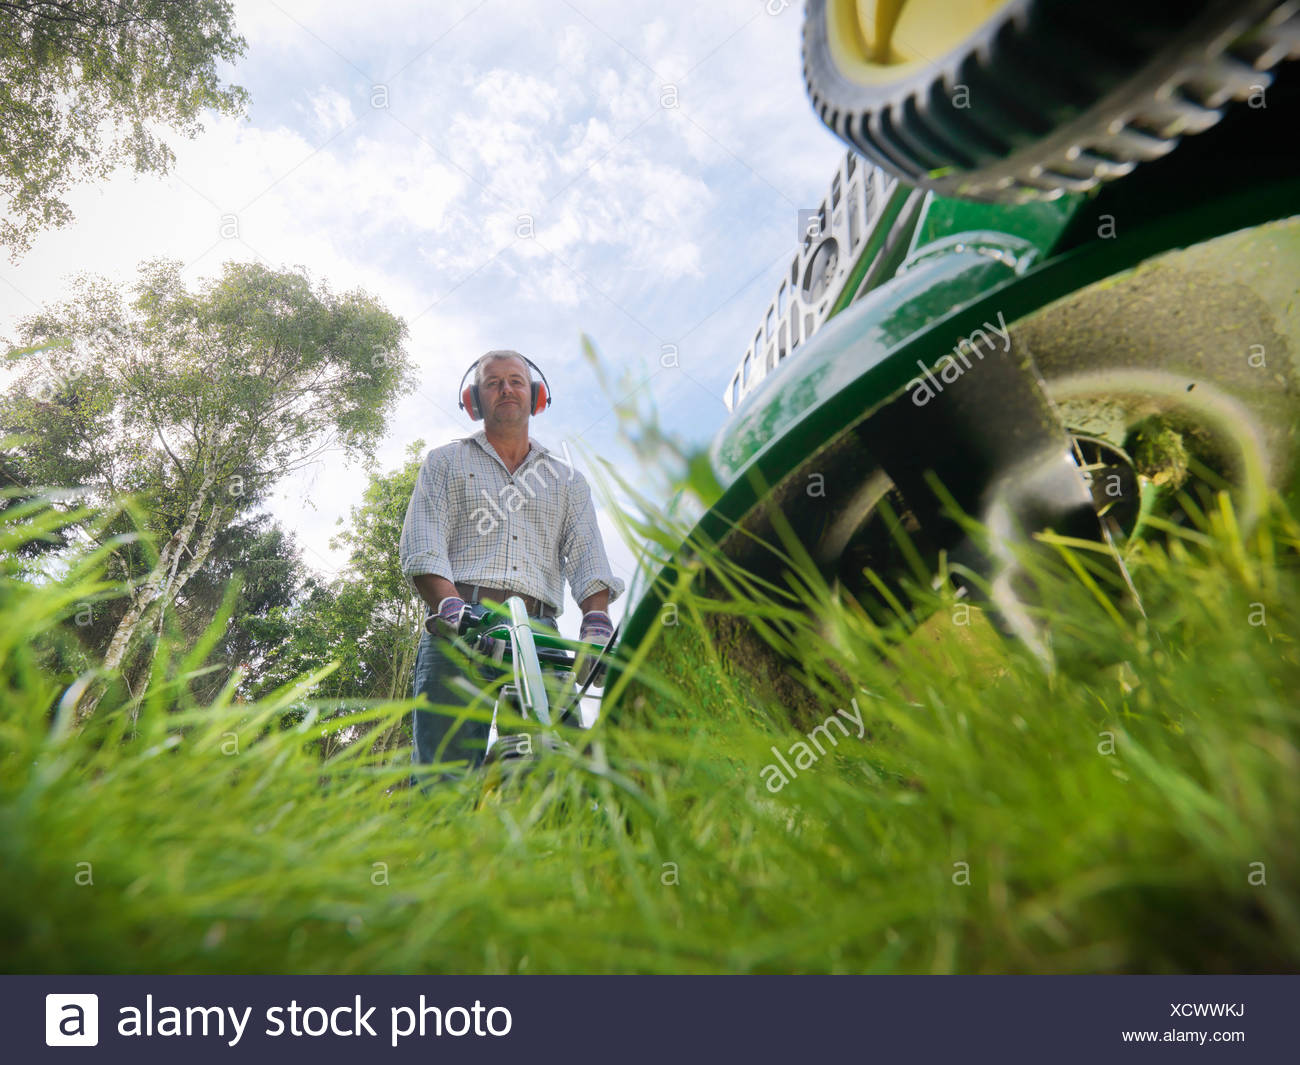 Low angle view of man mowing lawn - Stock Image